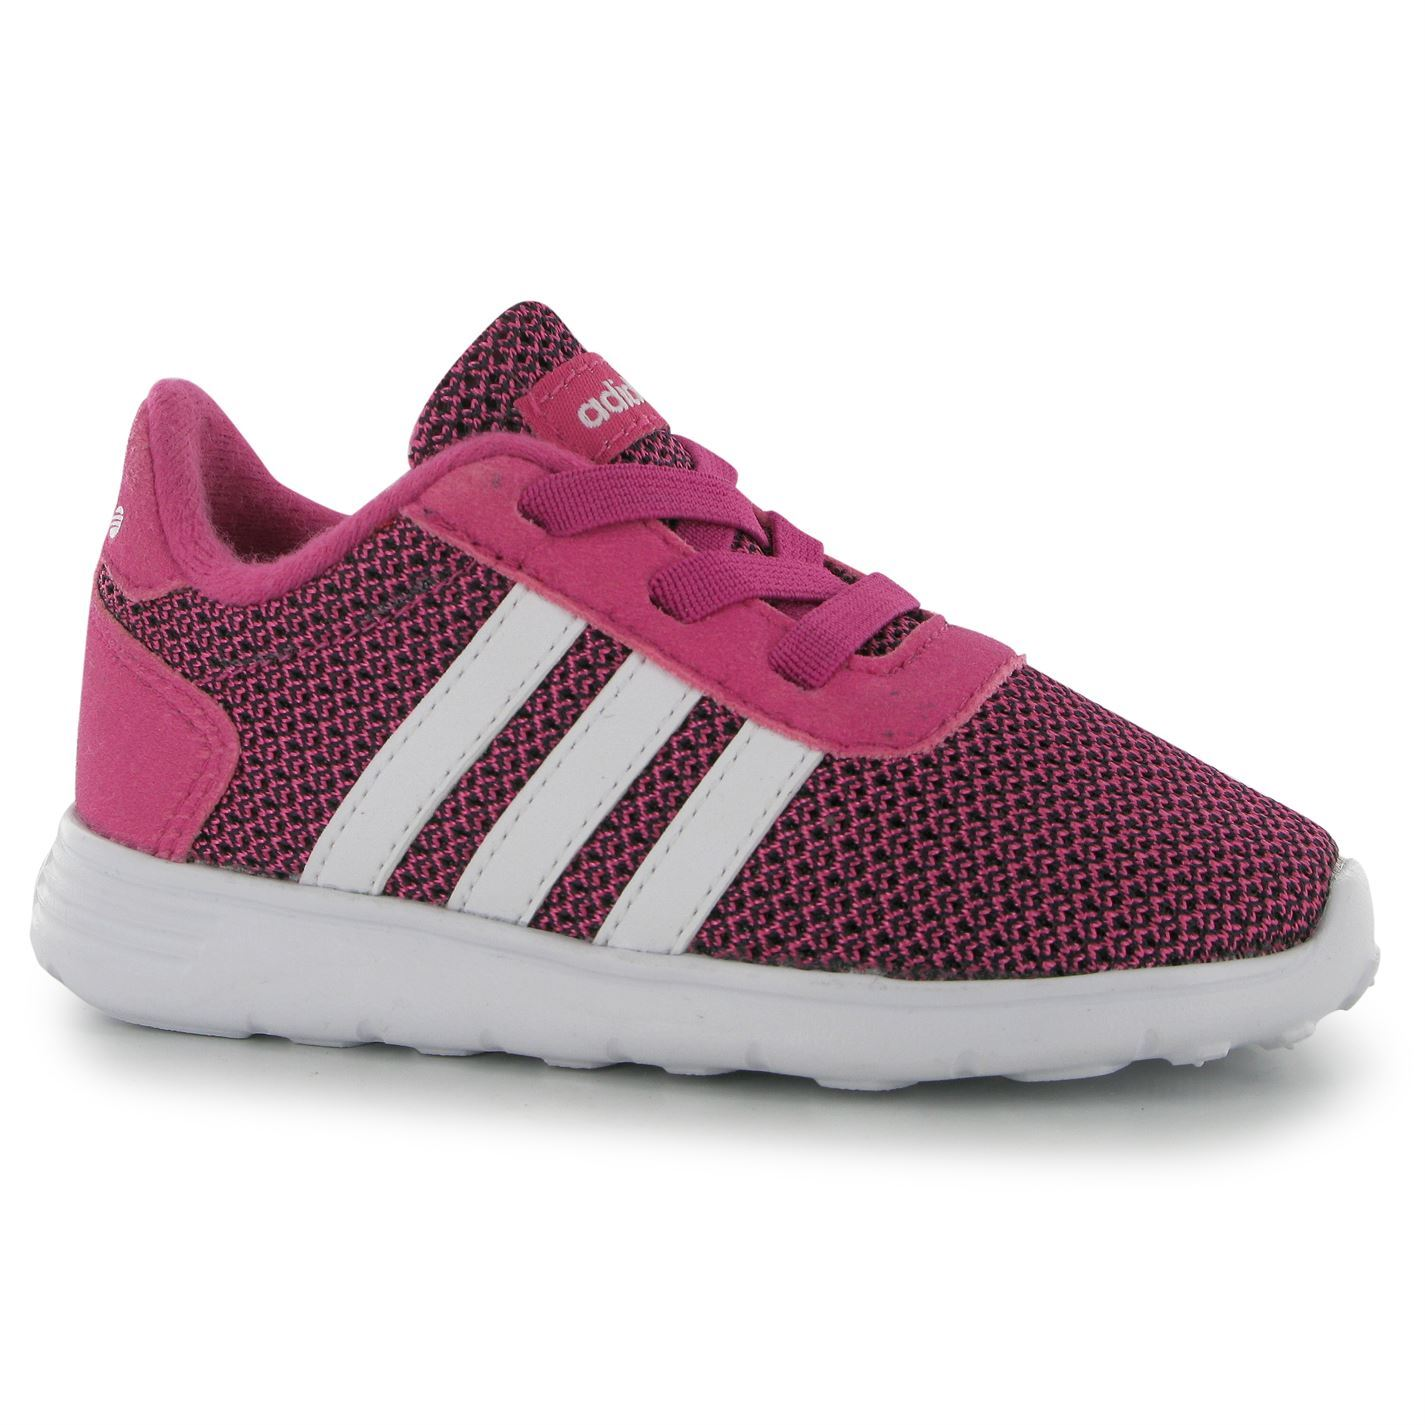 Adidas Shoes For Girls Trainers